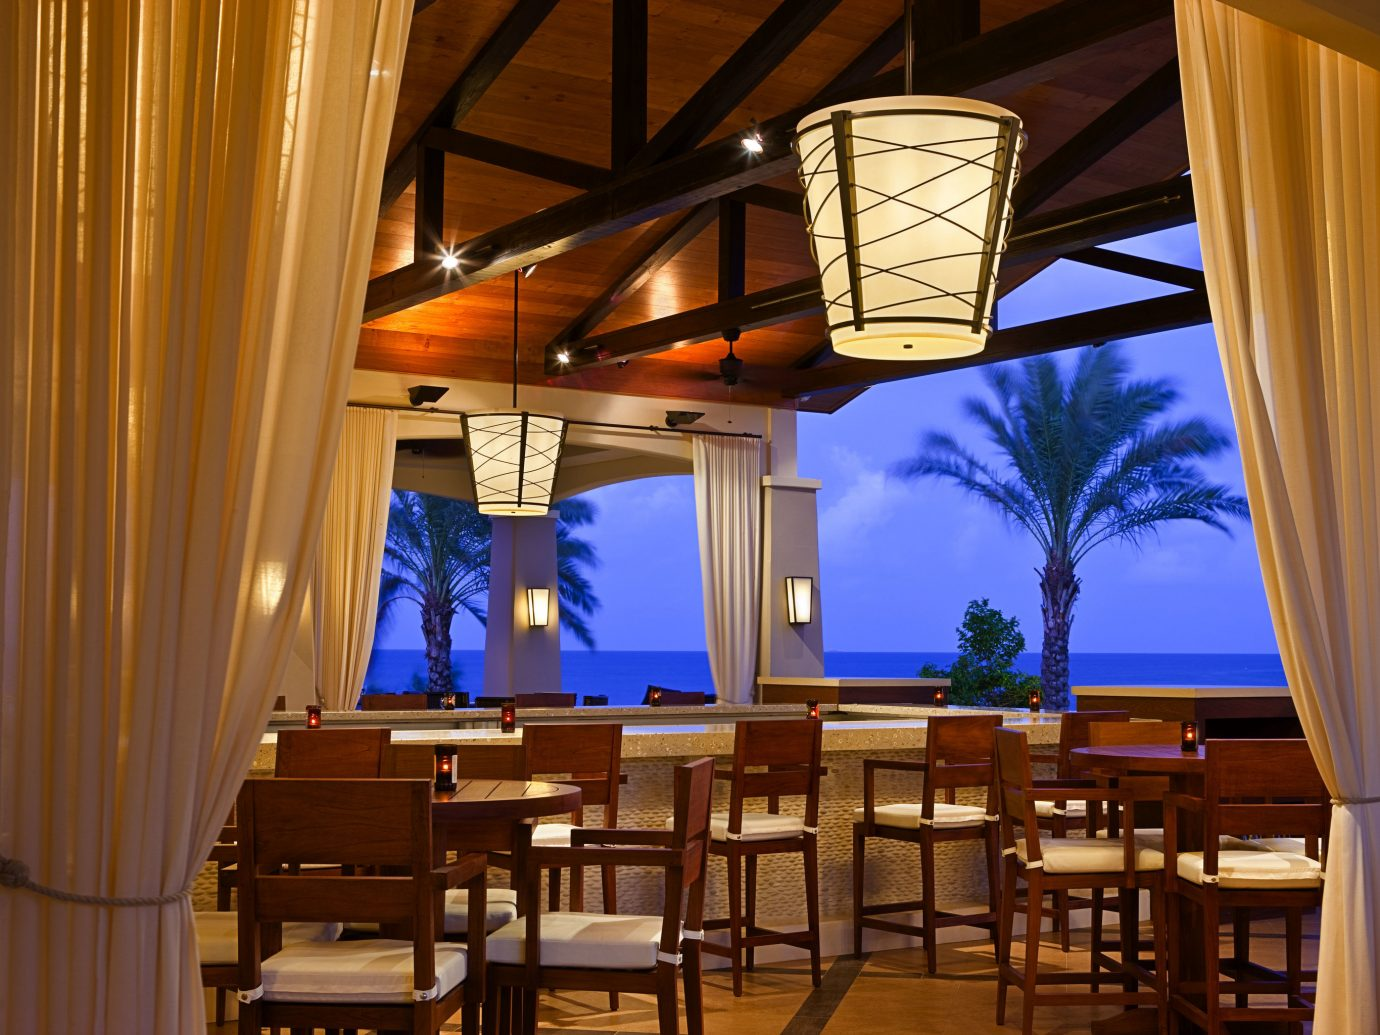 All-Inclusive Resorts Hotels indoor chair curtain restaurant interior design lighting dining room ceiling real estate table café furniture